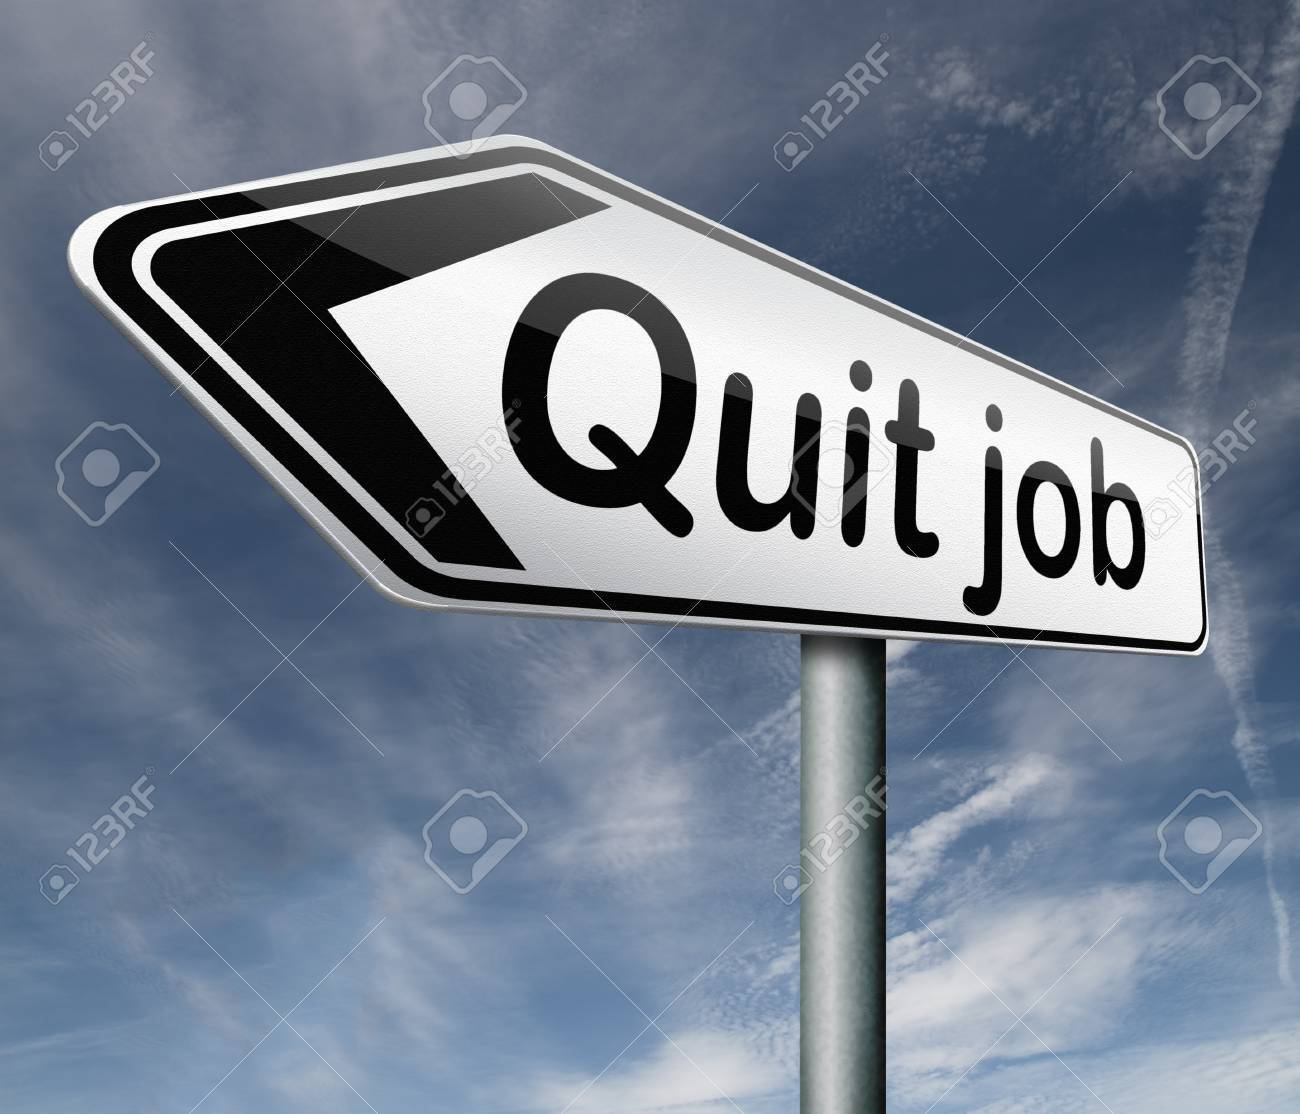 quit job resign quitting from work and getting unemployed stock stock photo quit job resign quitting from work and getting unemployed